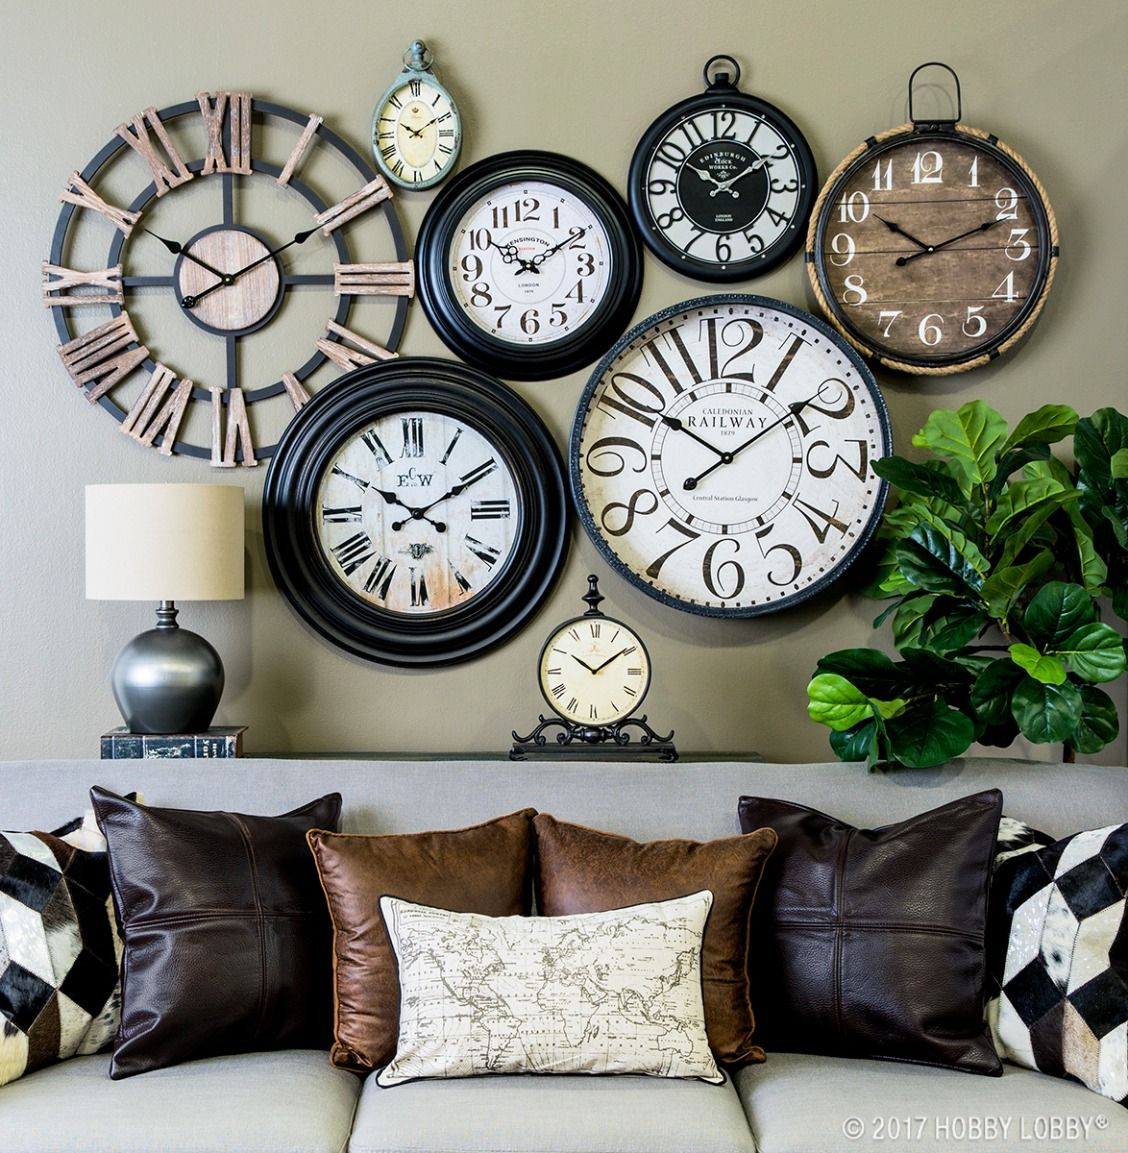 Time Is On Your Side When It Comes To Perfecting Your Decor Add Instant Inspiration To Any Room With A Gallery Wall Of Home Clock Clock Decor Clock Wall Decor